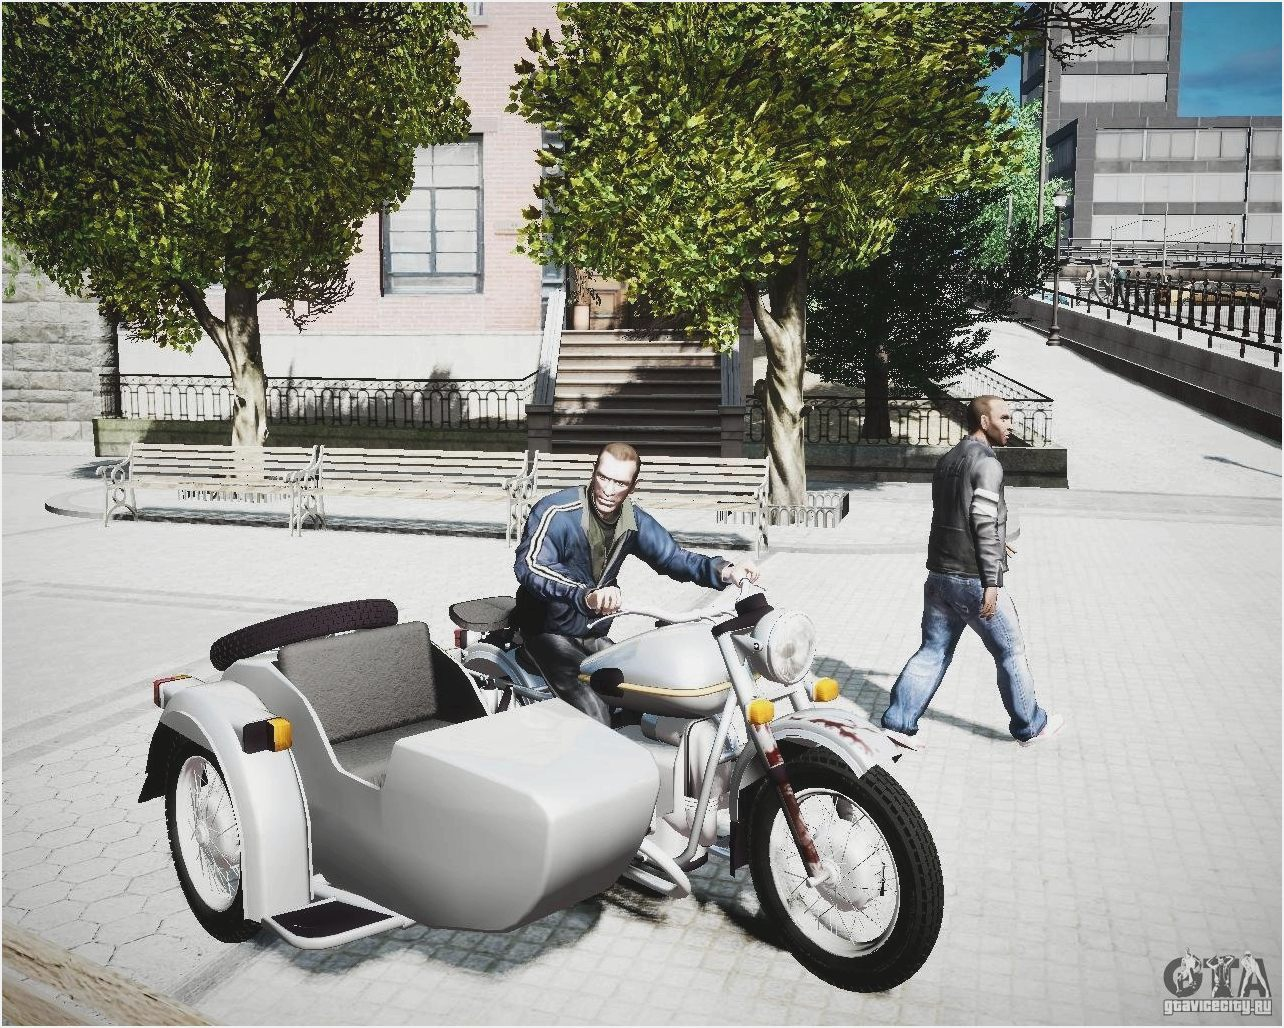 Ural M-63 with sidecar 1970 images #127183